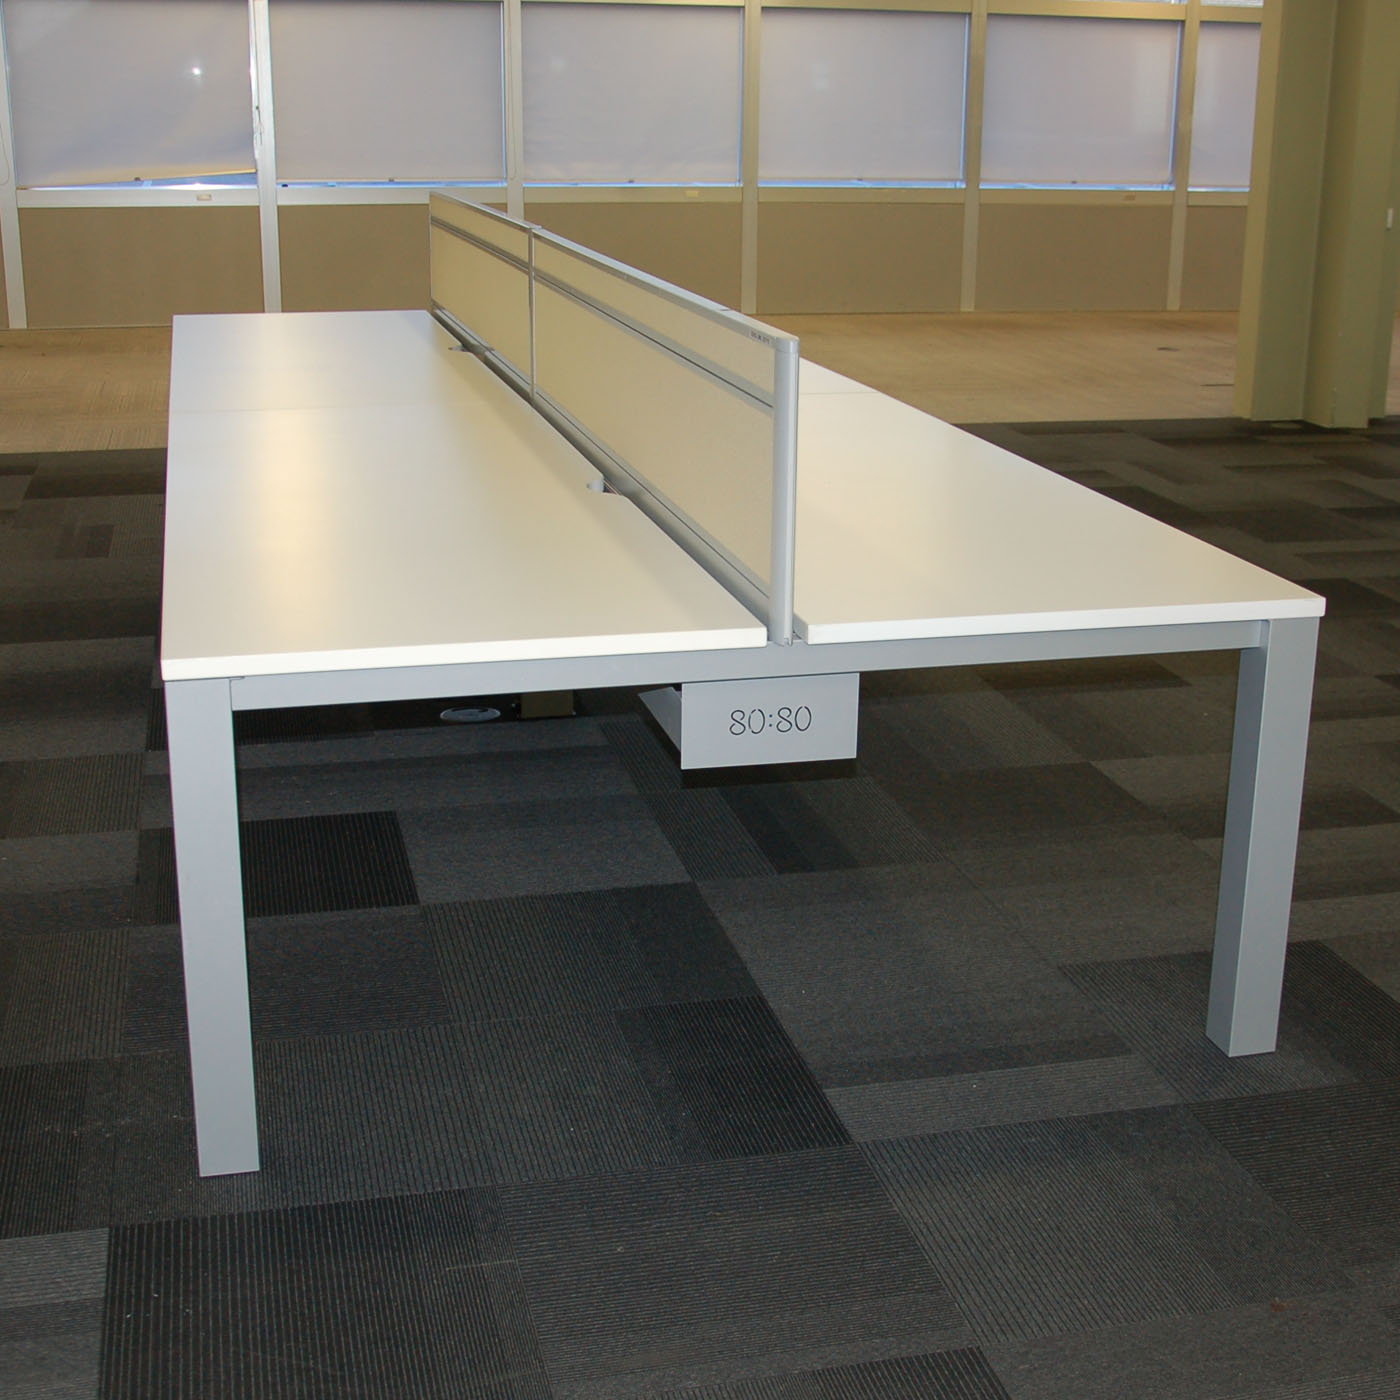 Tangent 80:80 Bench Desk White | Wide Office Desk | White Bench Desk On  Silver Frame